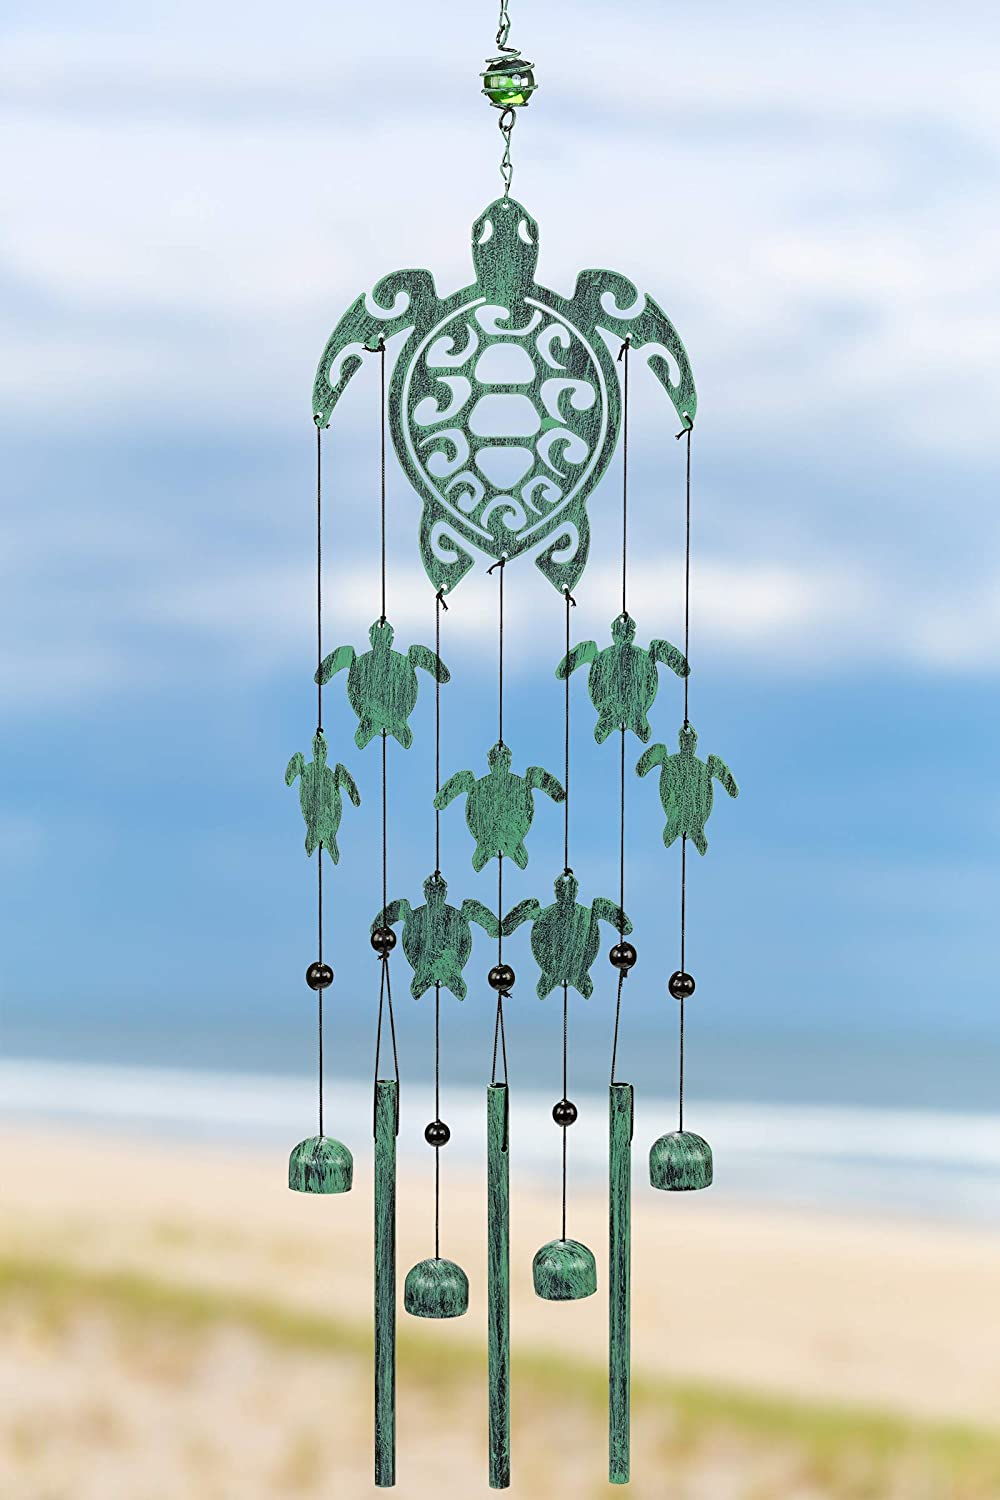 VP Home Tribal Turtles Outdoor Garden Decor Wind Chime (Rustic Sea Green)